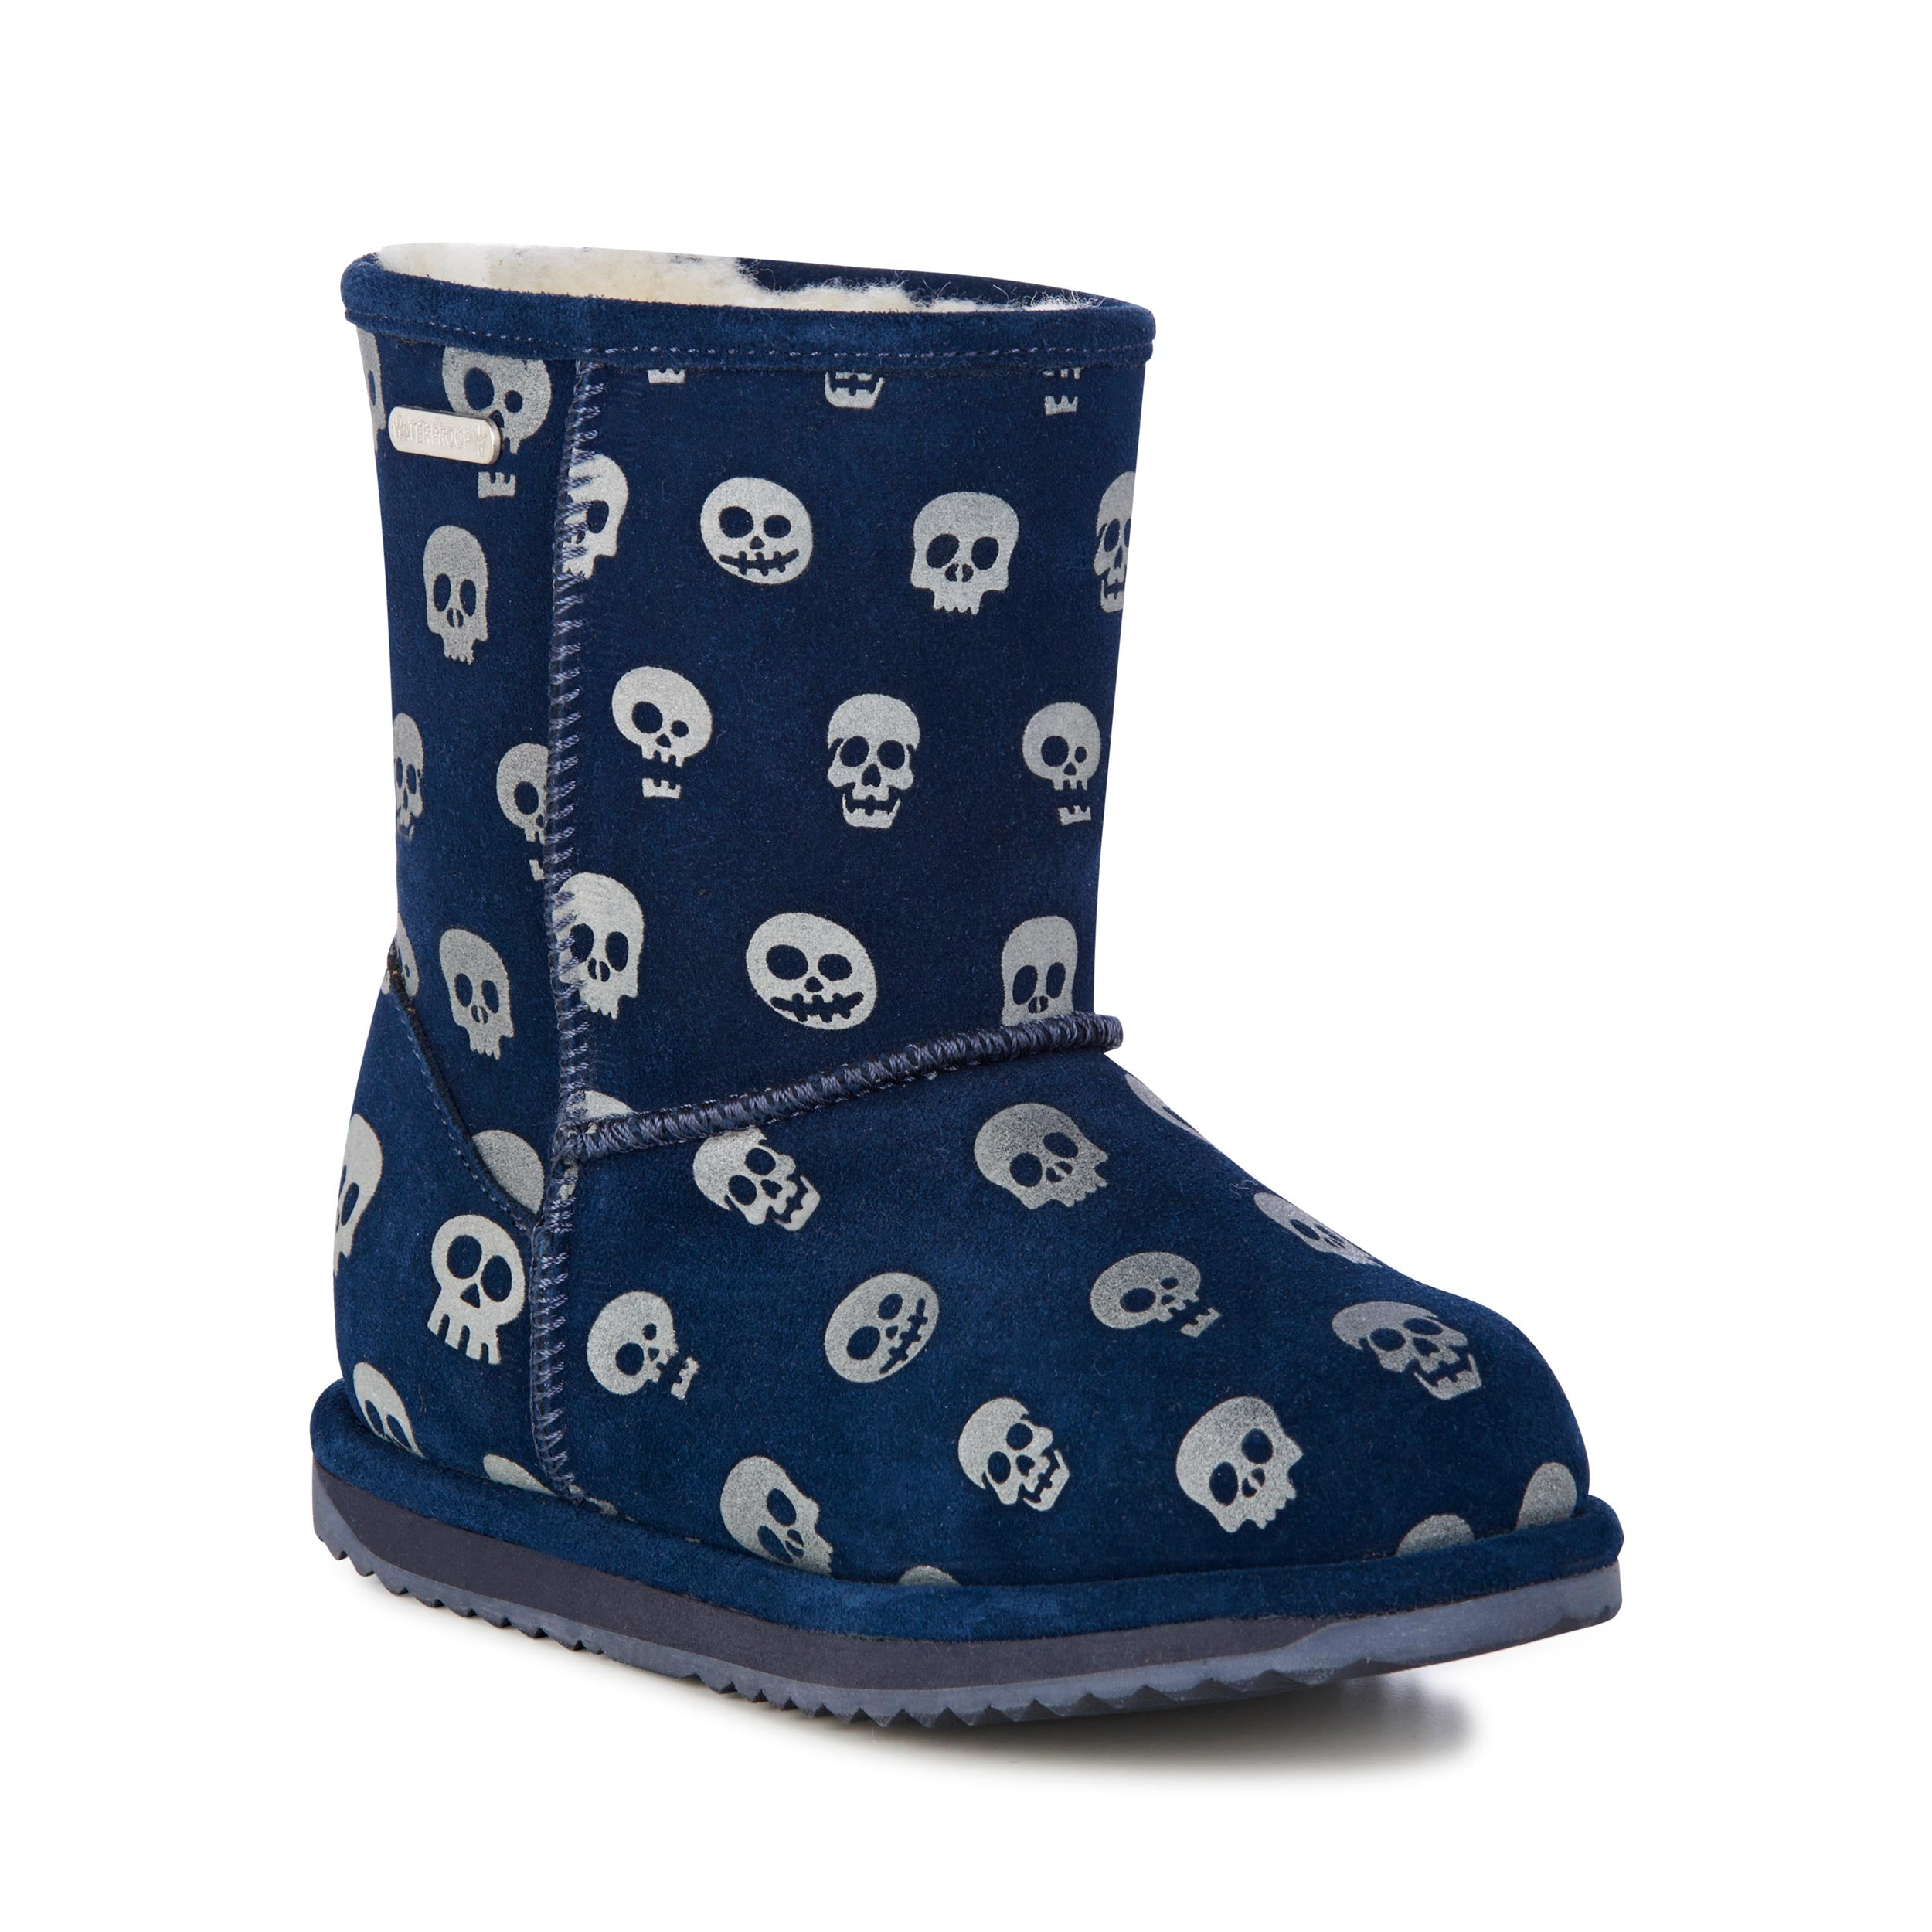 EMU Midnight Skull Brumby Boot